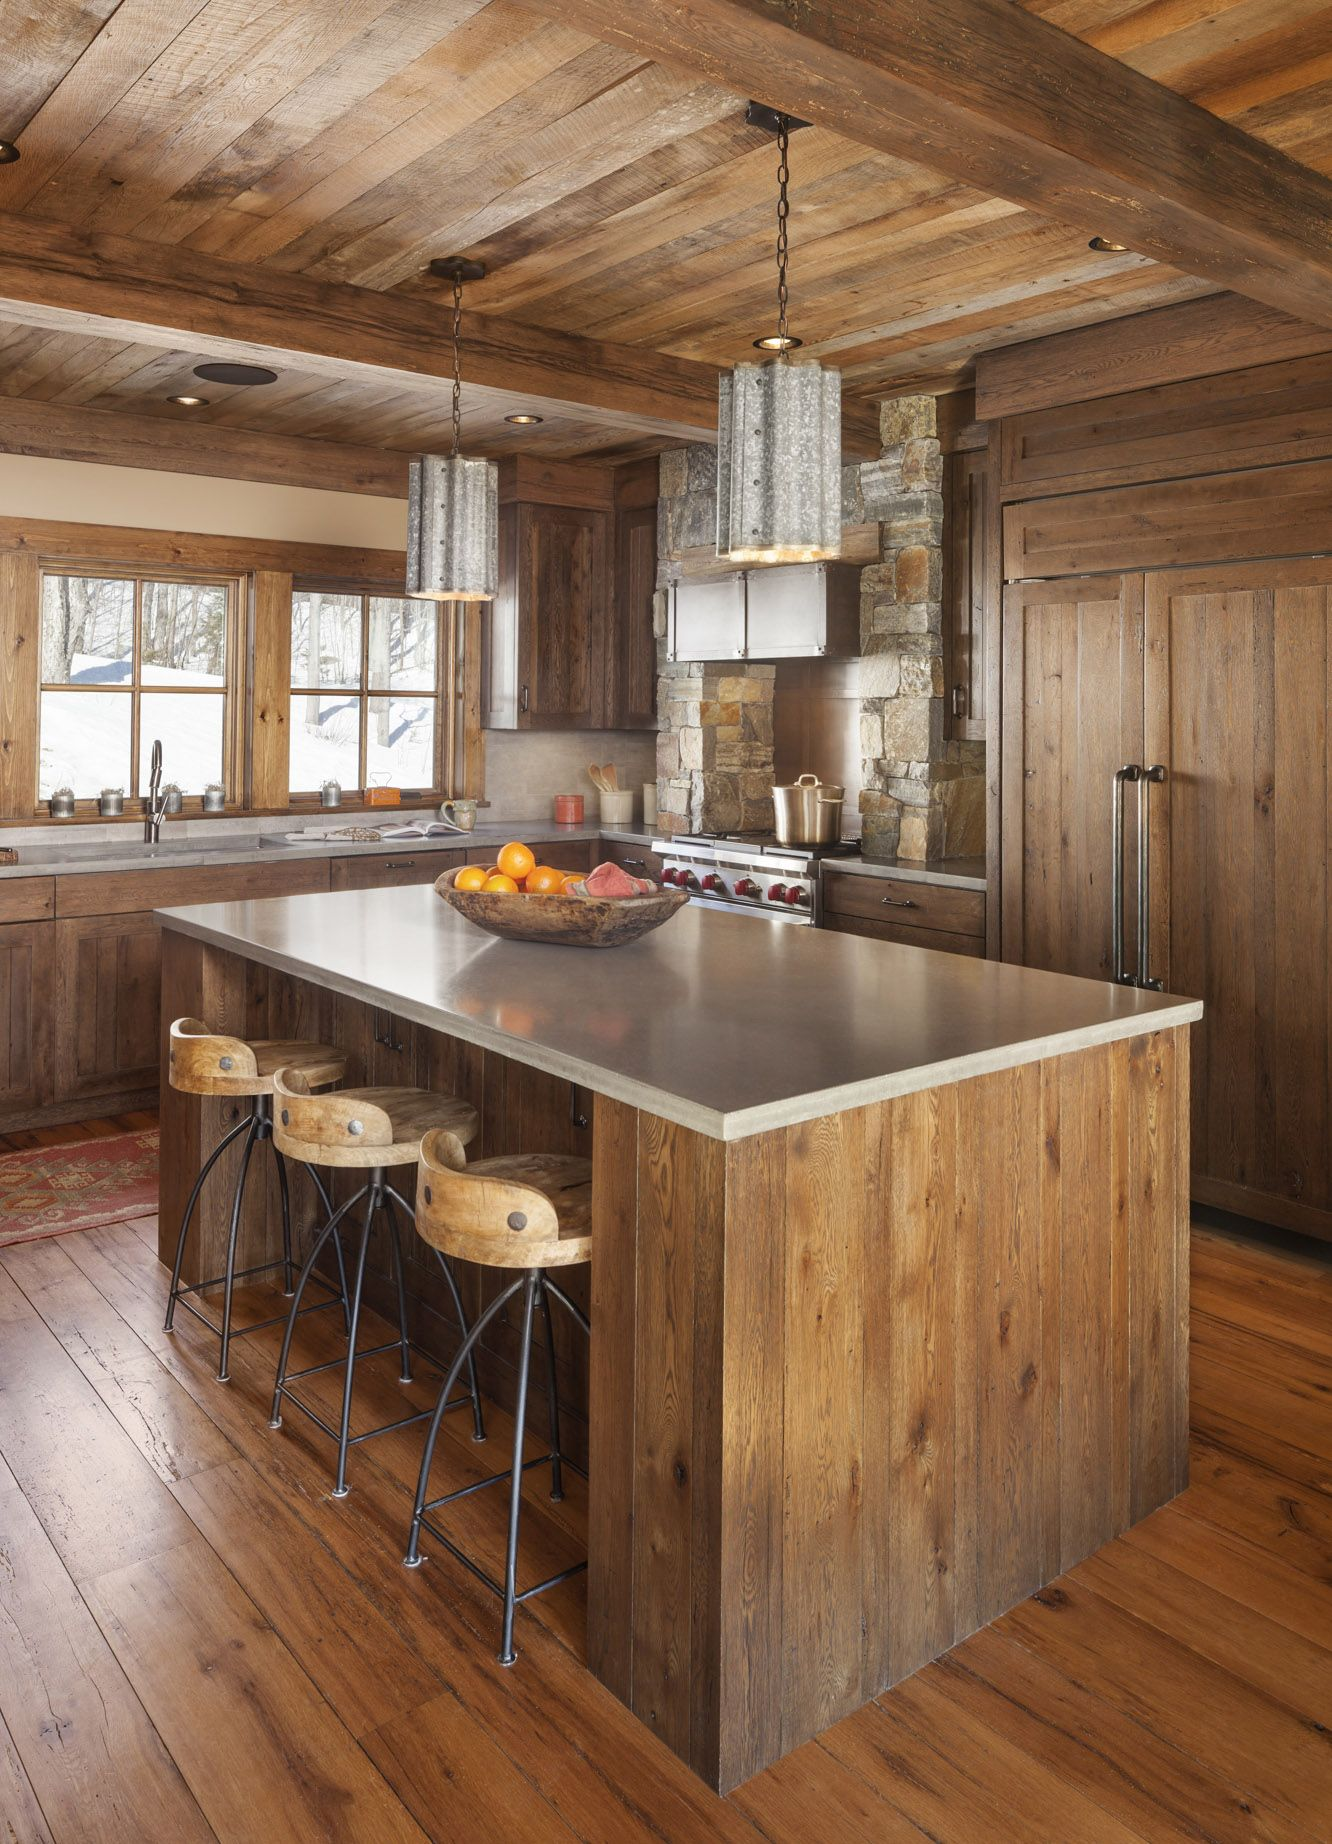 Reclaimed White Oak Was Used For The Flooring And Paneling Material Wire Brushed Ceiling